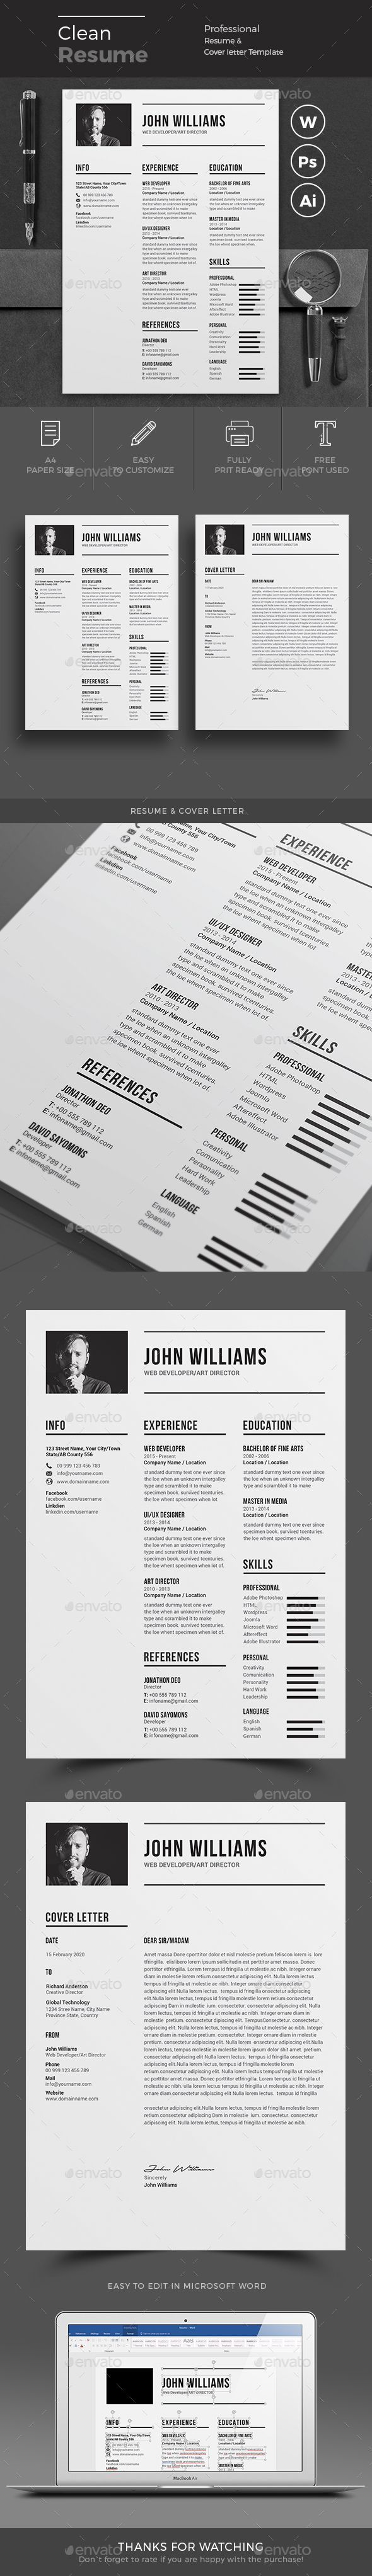 bartender job description resume%0A Resume Template  Resume Builder  CV Template  Free Cover Letter  MS  Word on